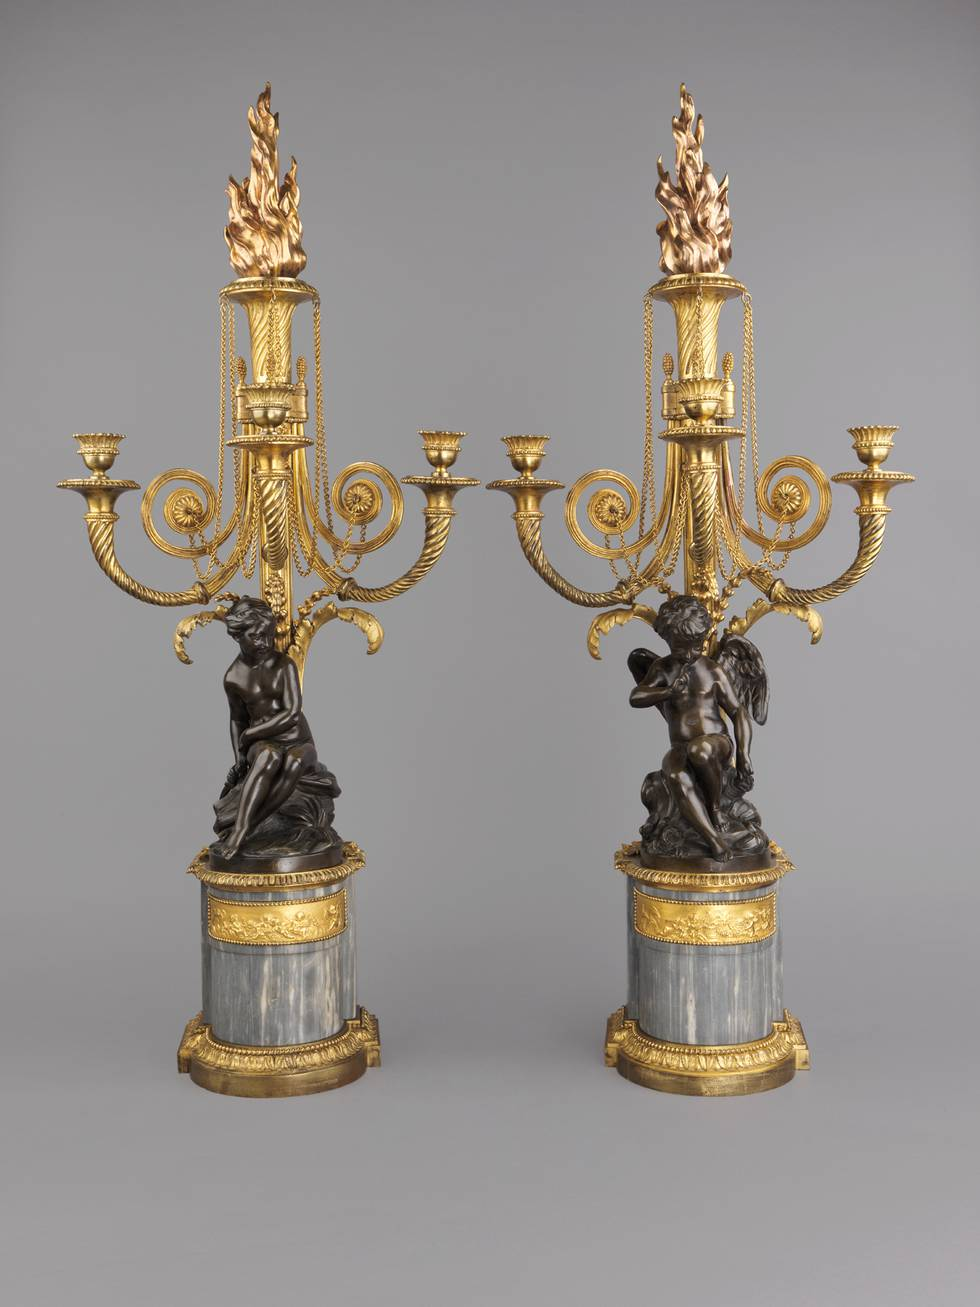 Pair of gold candelabrums, a figure at base